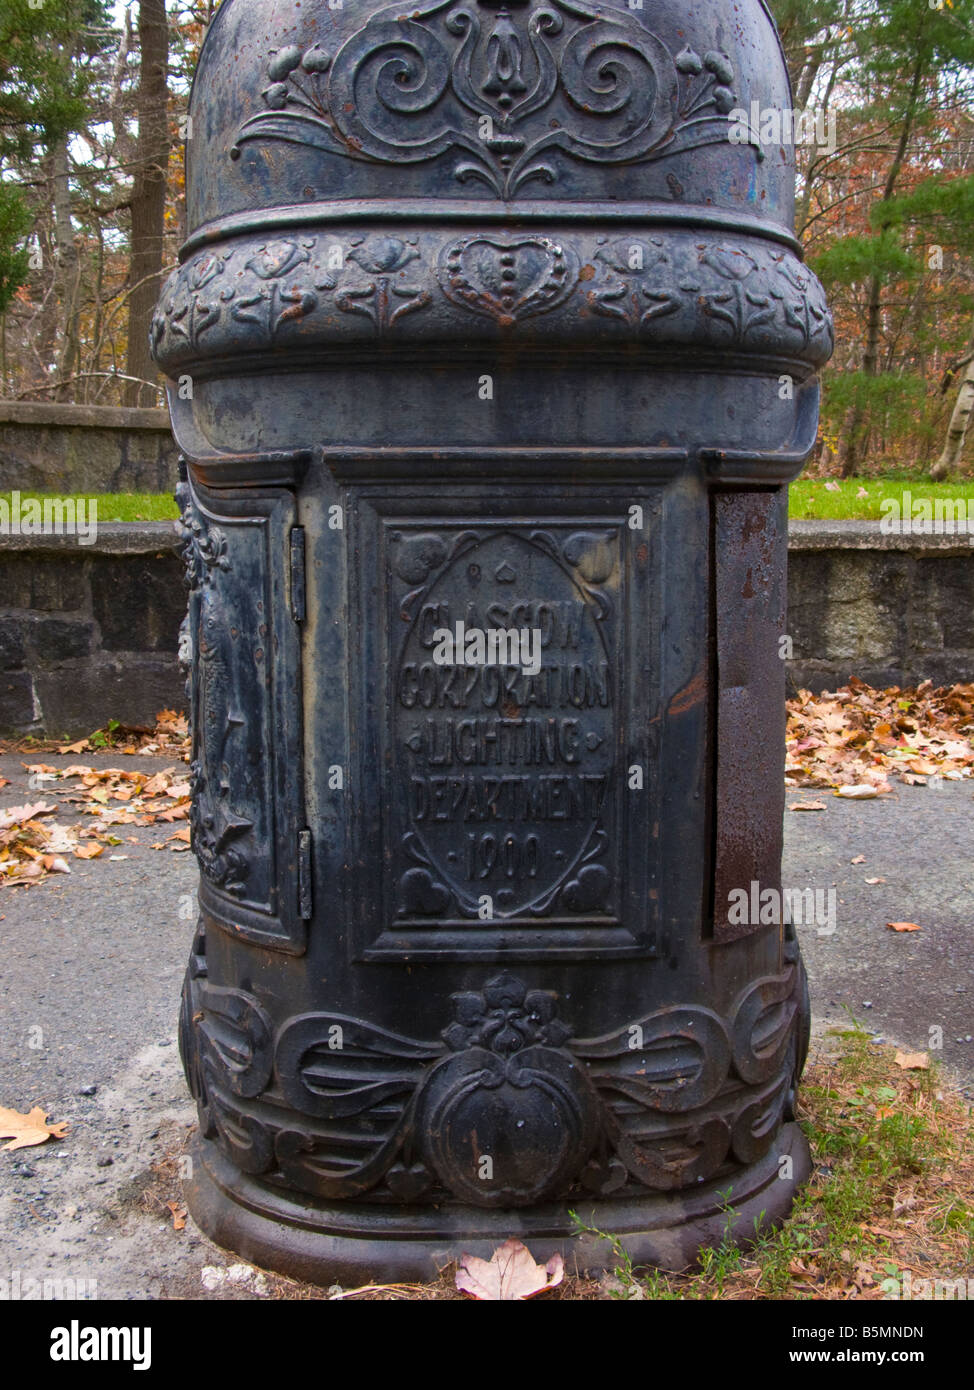 Cast Iron Furniture High Resolution Stock Photography And Images Alamy